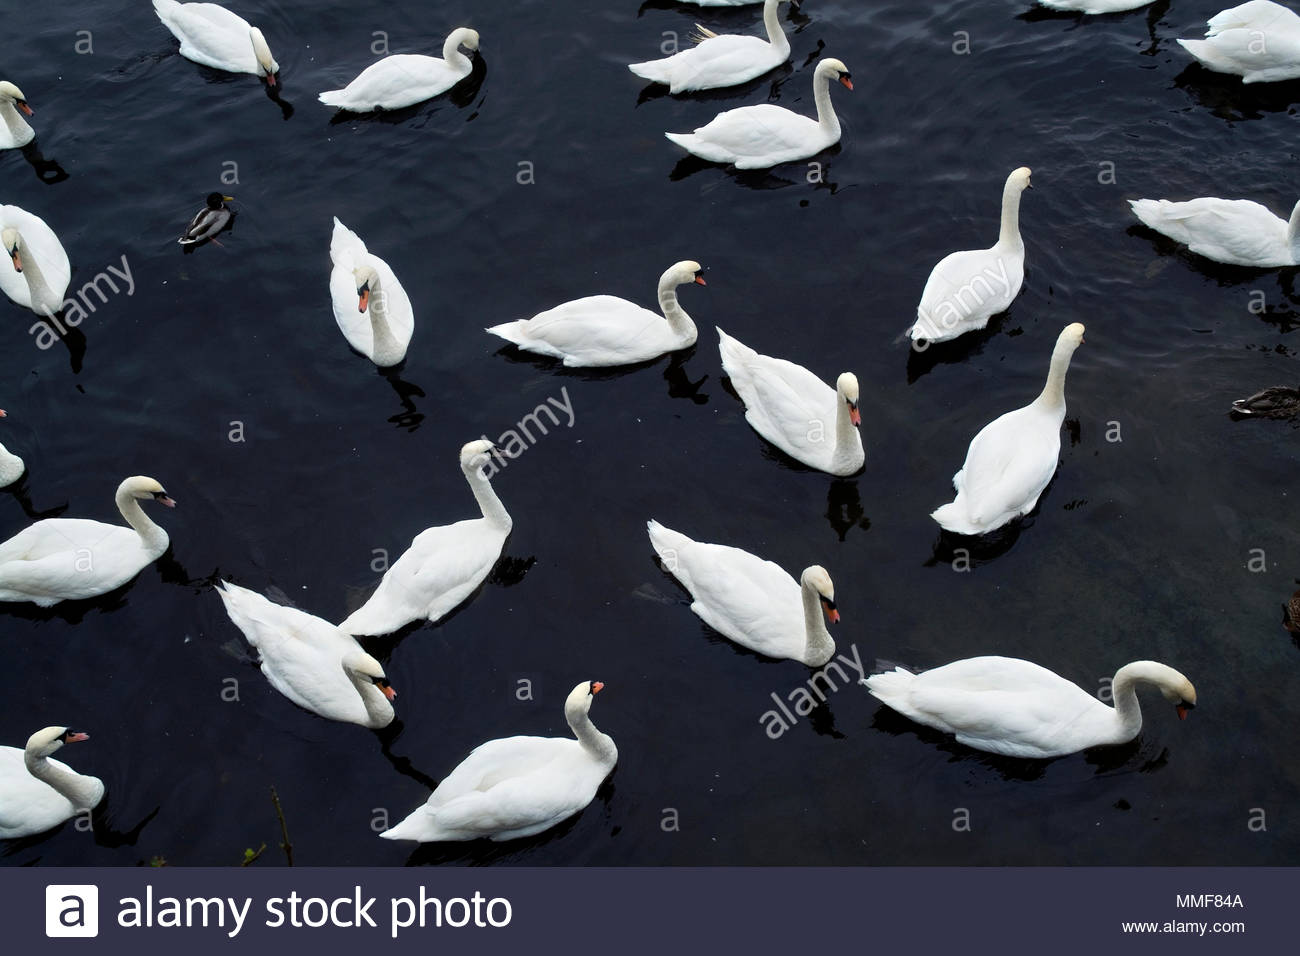 Elevated view of Swans swimming in water. - Stock Image